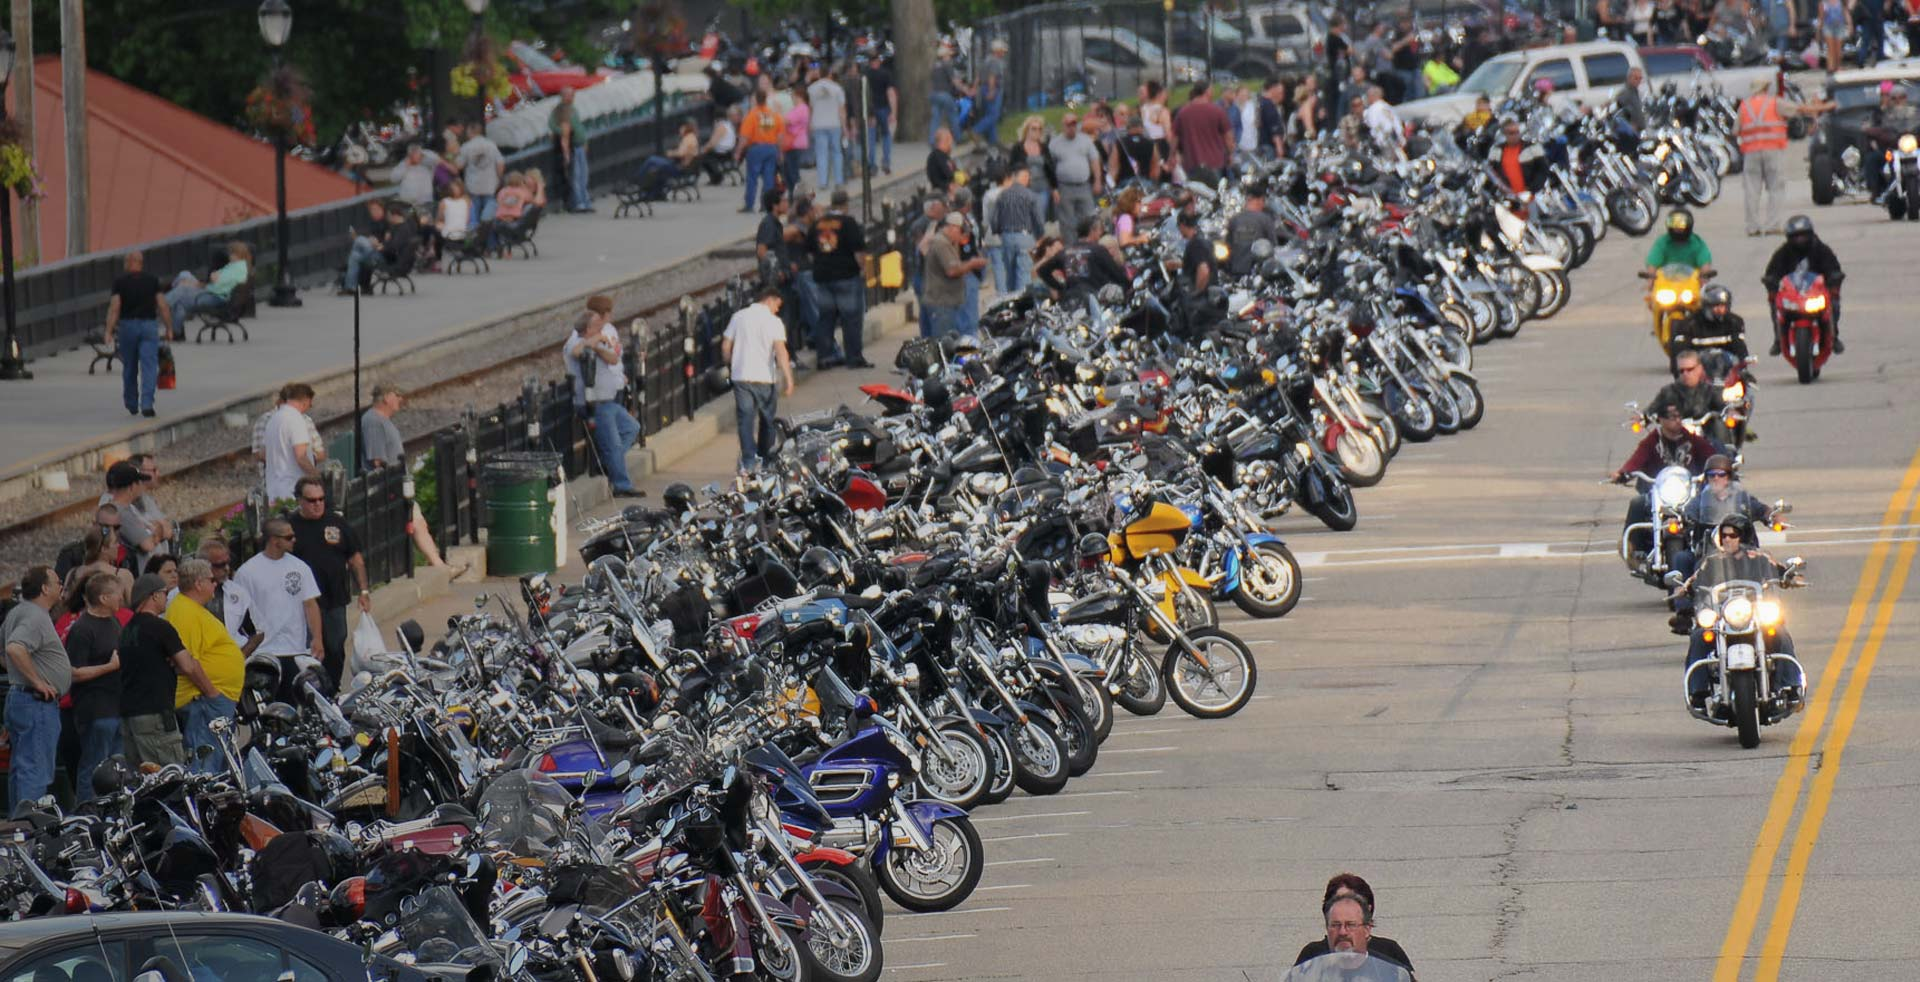 laconia motorcycle rally pictures  Laconia Motorcycle Week®